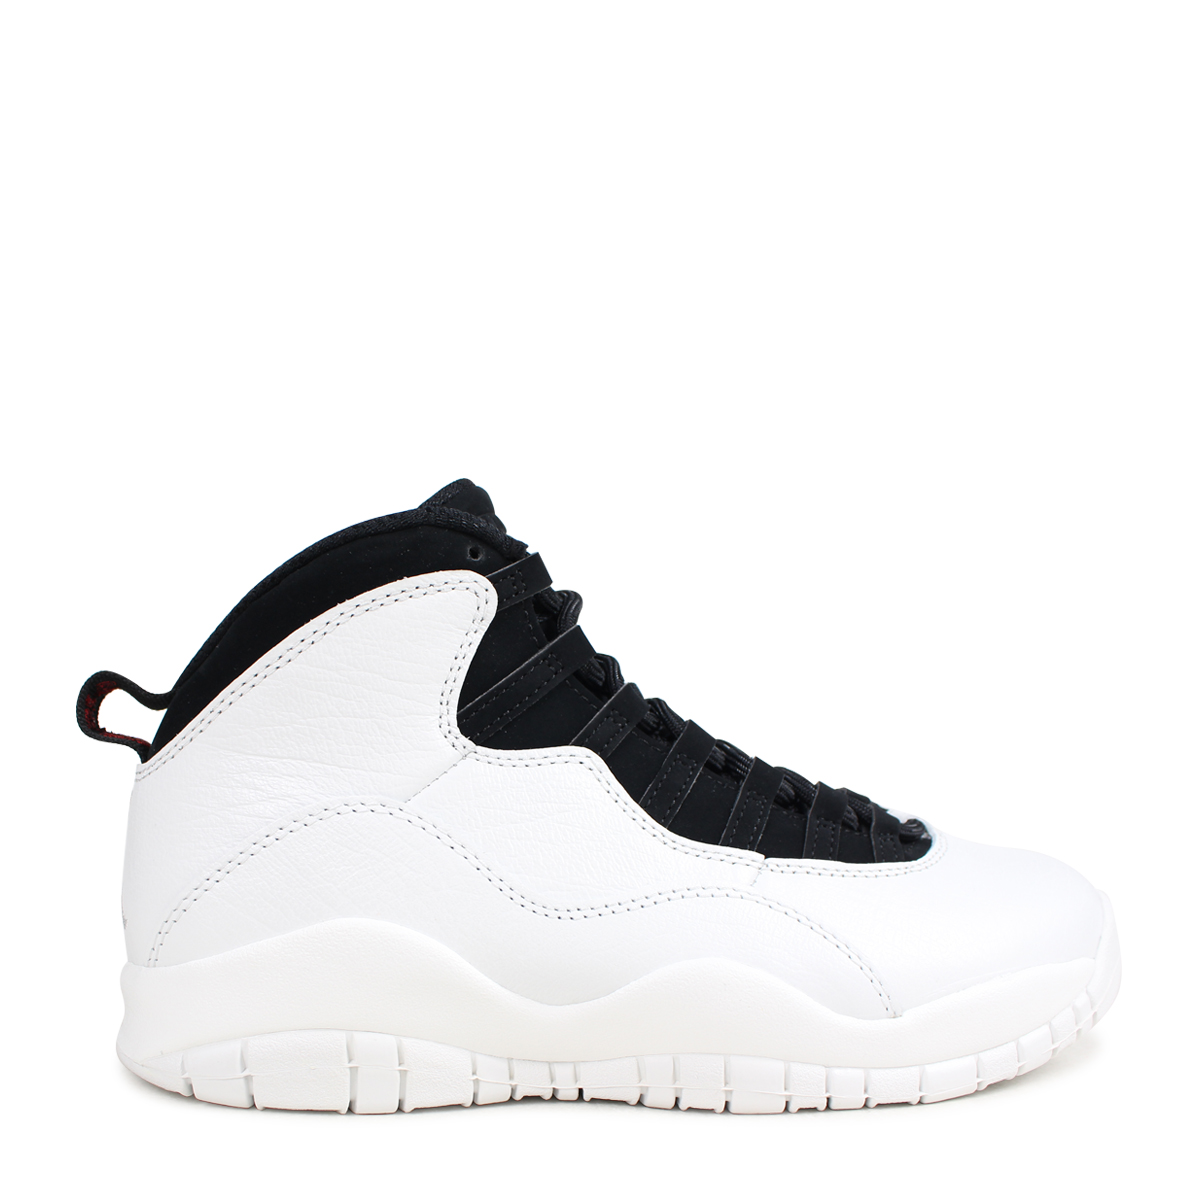 buy online 8d783 ac430 NIKE AIR JORDAN 10 RETRO I'M BACK Nike Air Jordan 10 nostalgic sneakers men  310,805-104 white [3/30 Shinnyu load] [183]